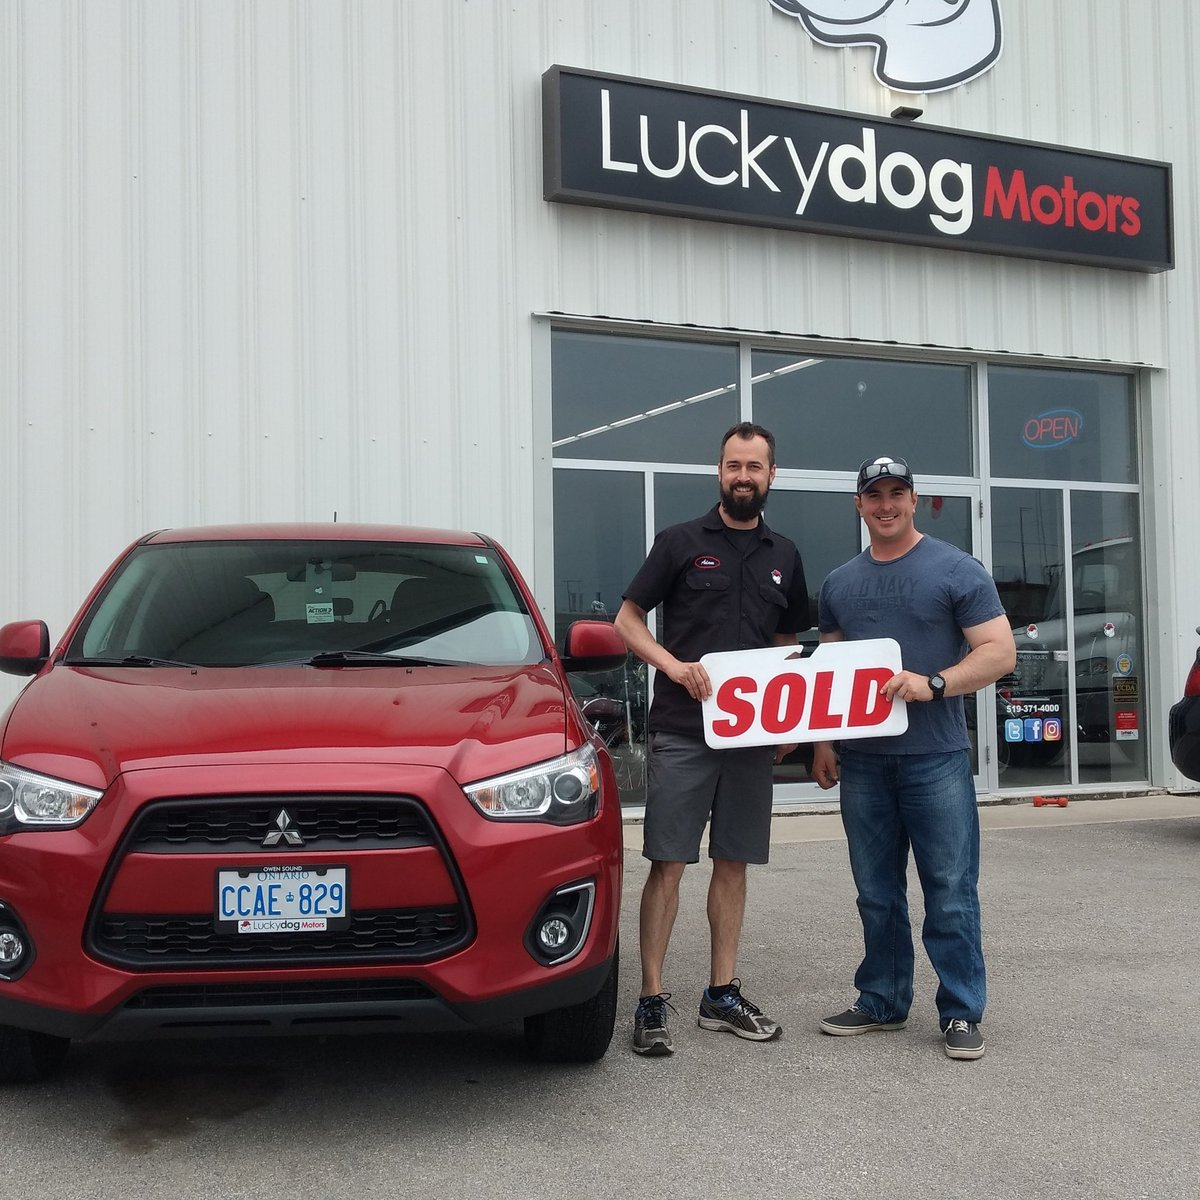 Congrats to Jacob Borgford for choosing Luckydog for your new Mitsubishi RVR #meaford #owensound #dnd #newcar #mitsubishirvr<br>http://pic.twitter.com/9DjDFt2XOe